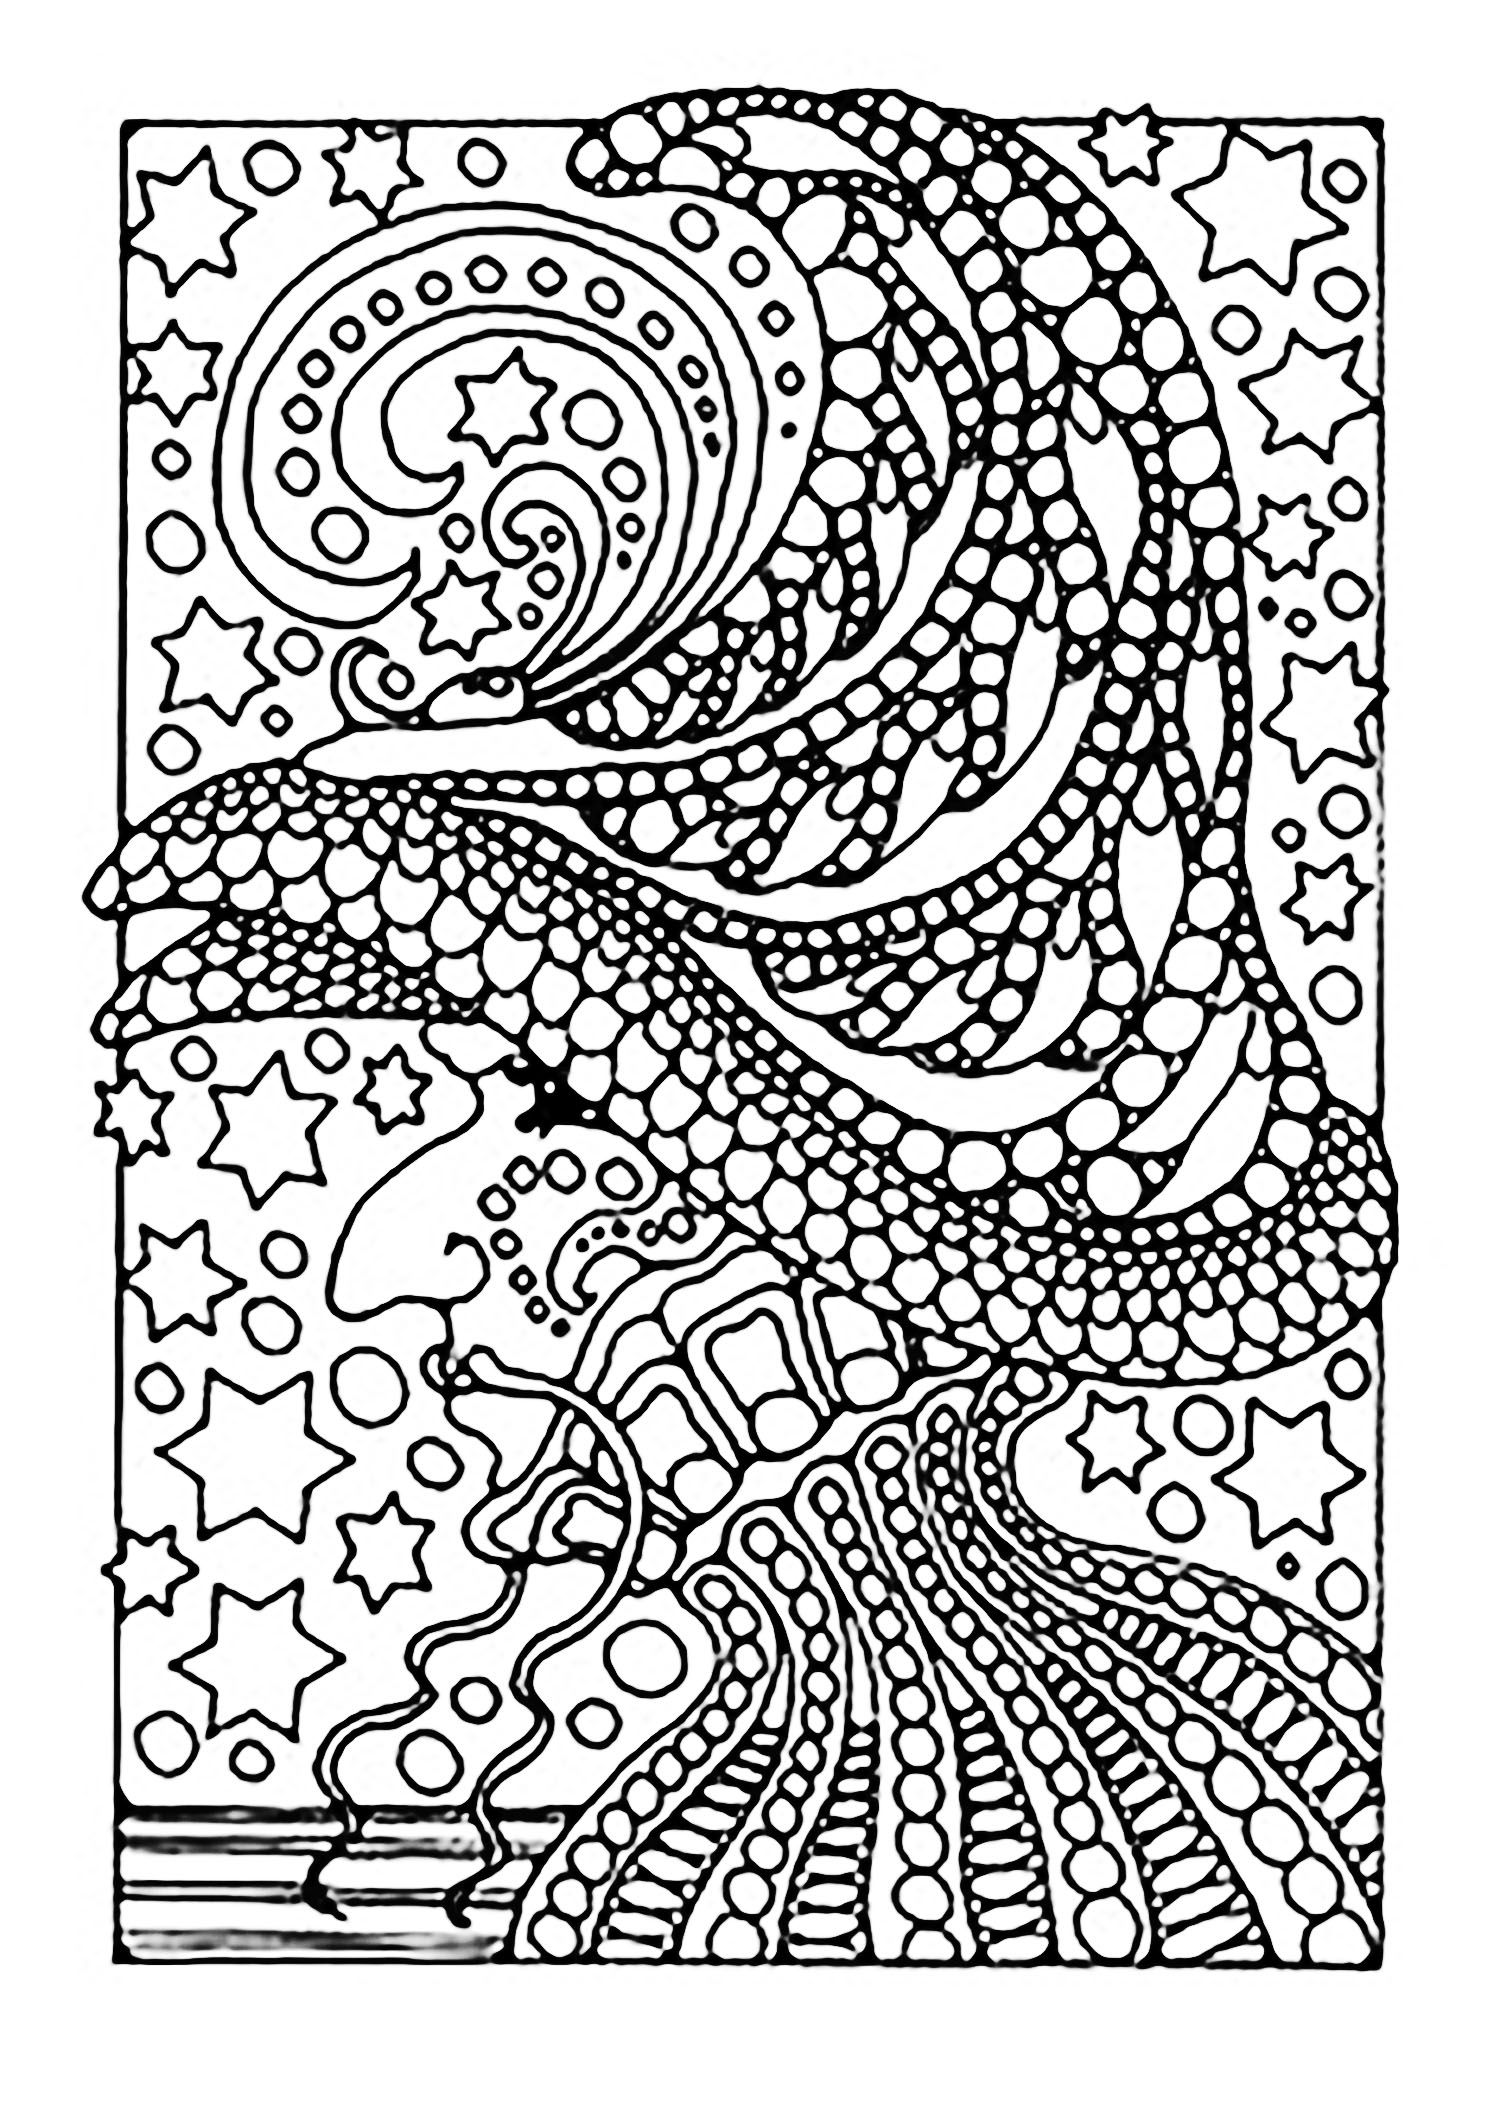 Adult Halloween Witch And Stars Coloring Pages Printable Book To Print For Free Find More Online Kids Adults Of